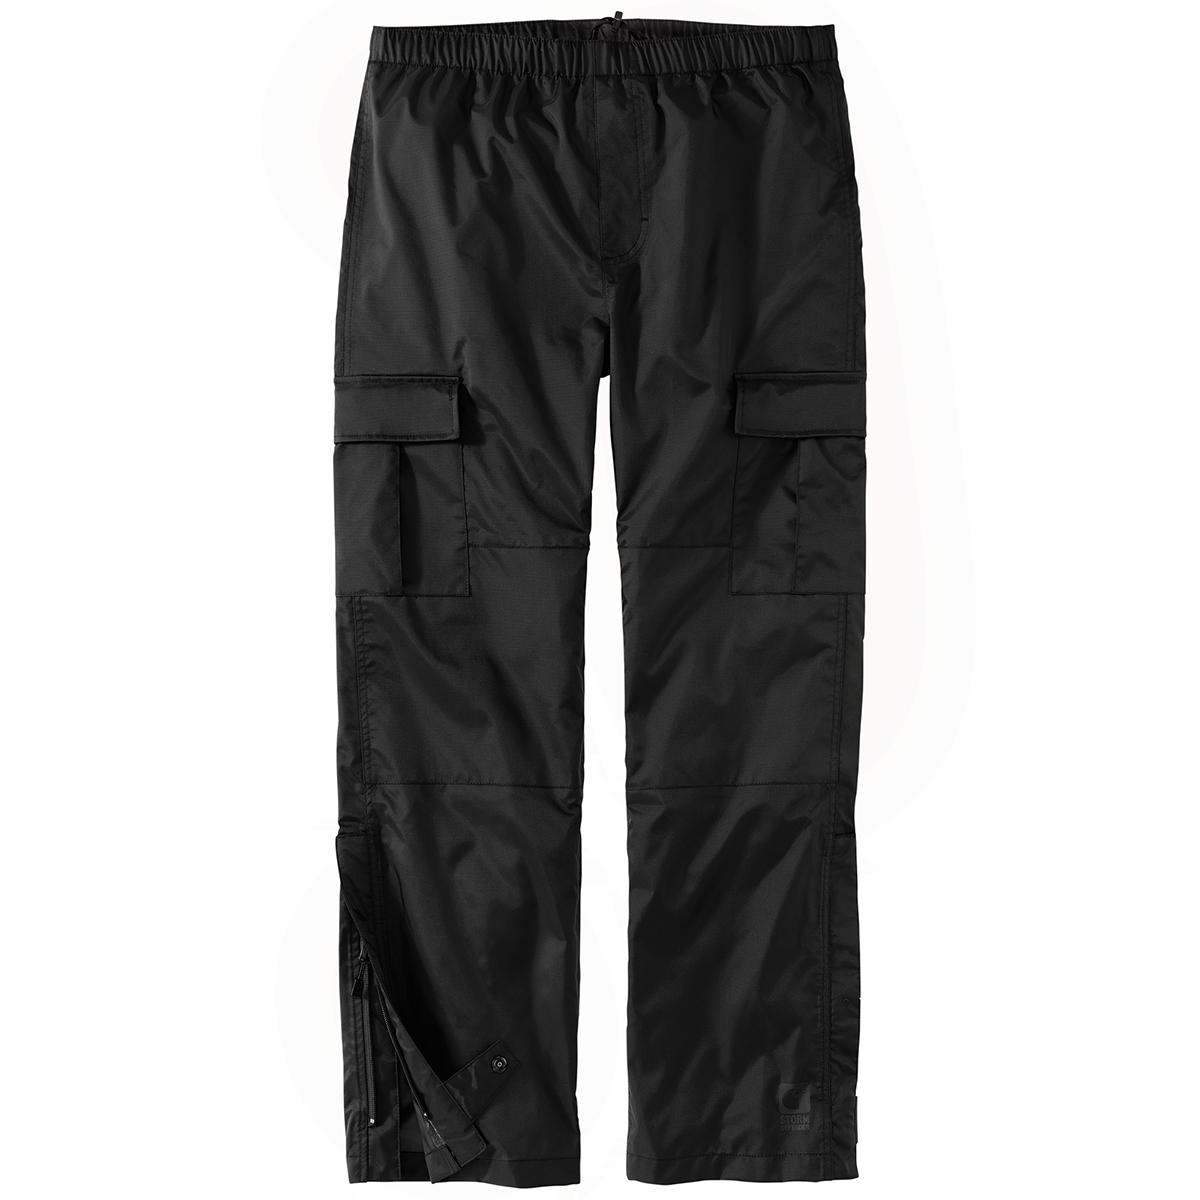 Carhartt Men's Dry Harbor Waterproof Breathable Pant 103507